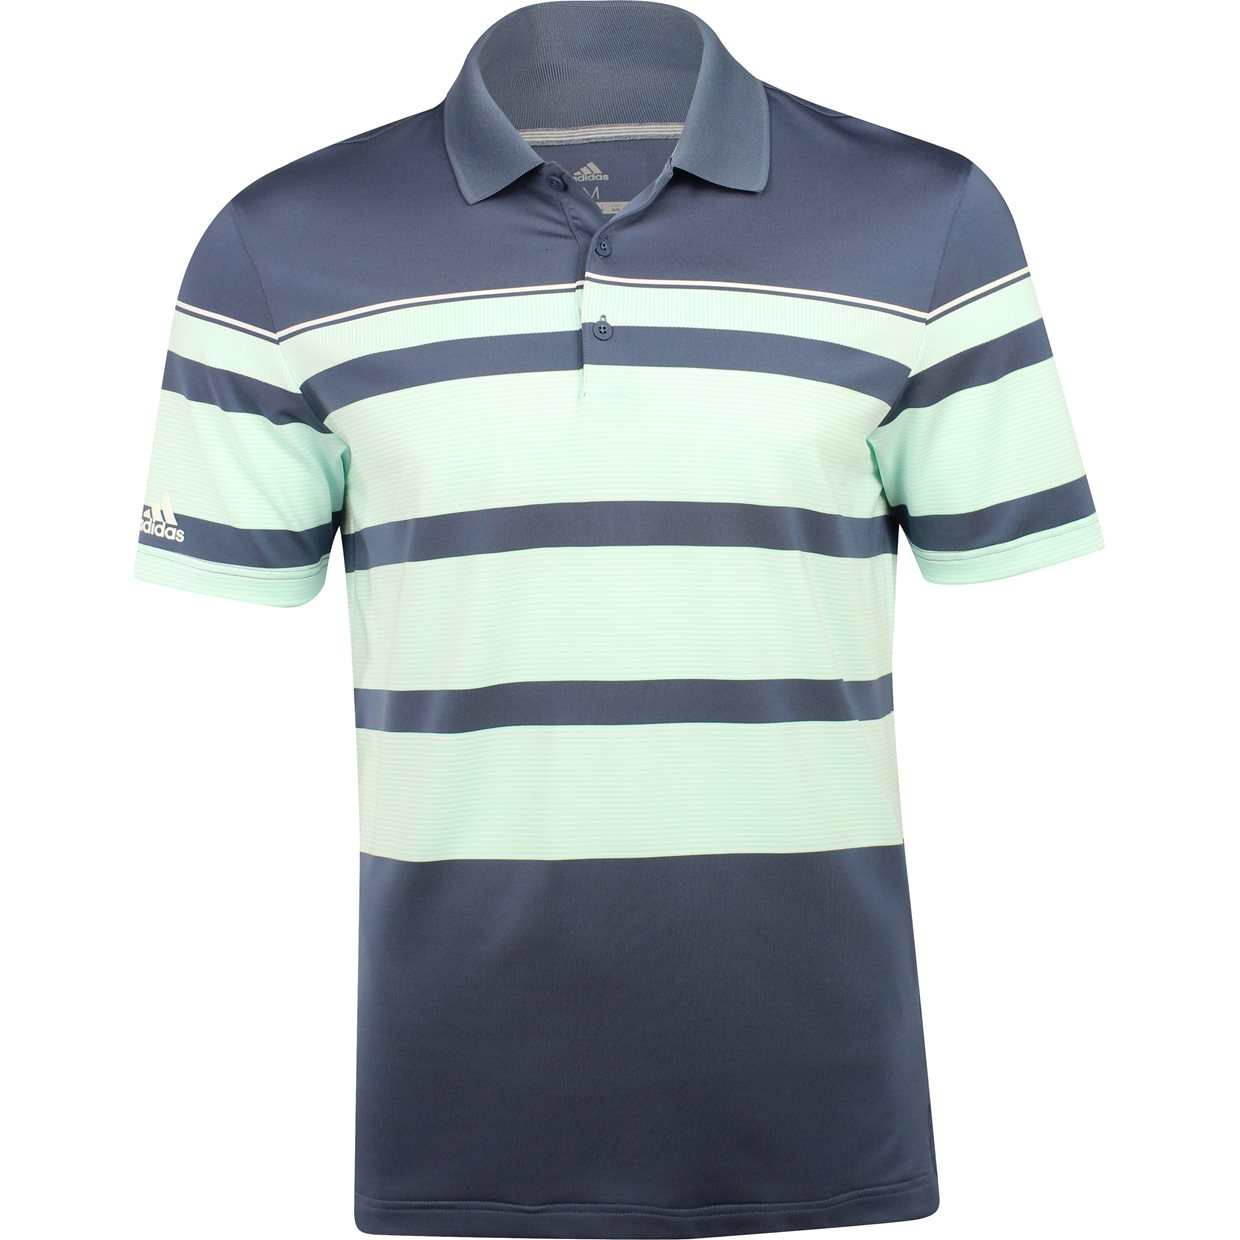 Adidas Ultimate 365 Engineered 3 Stripe Shirt Apparel At Globalgolf